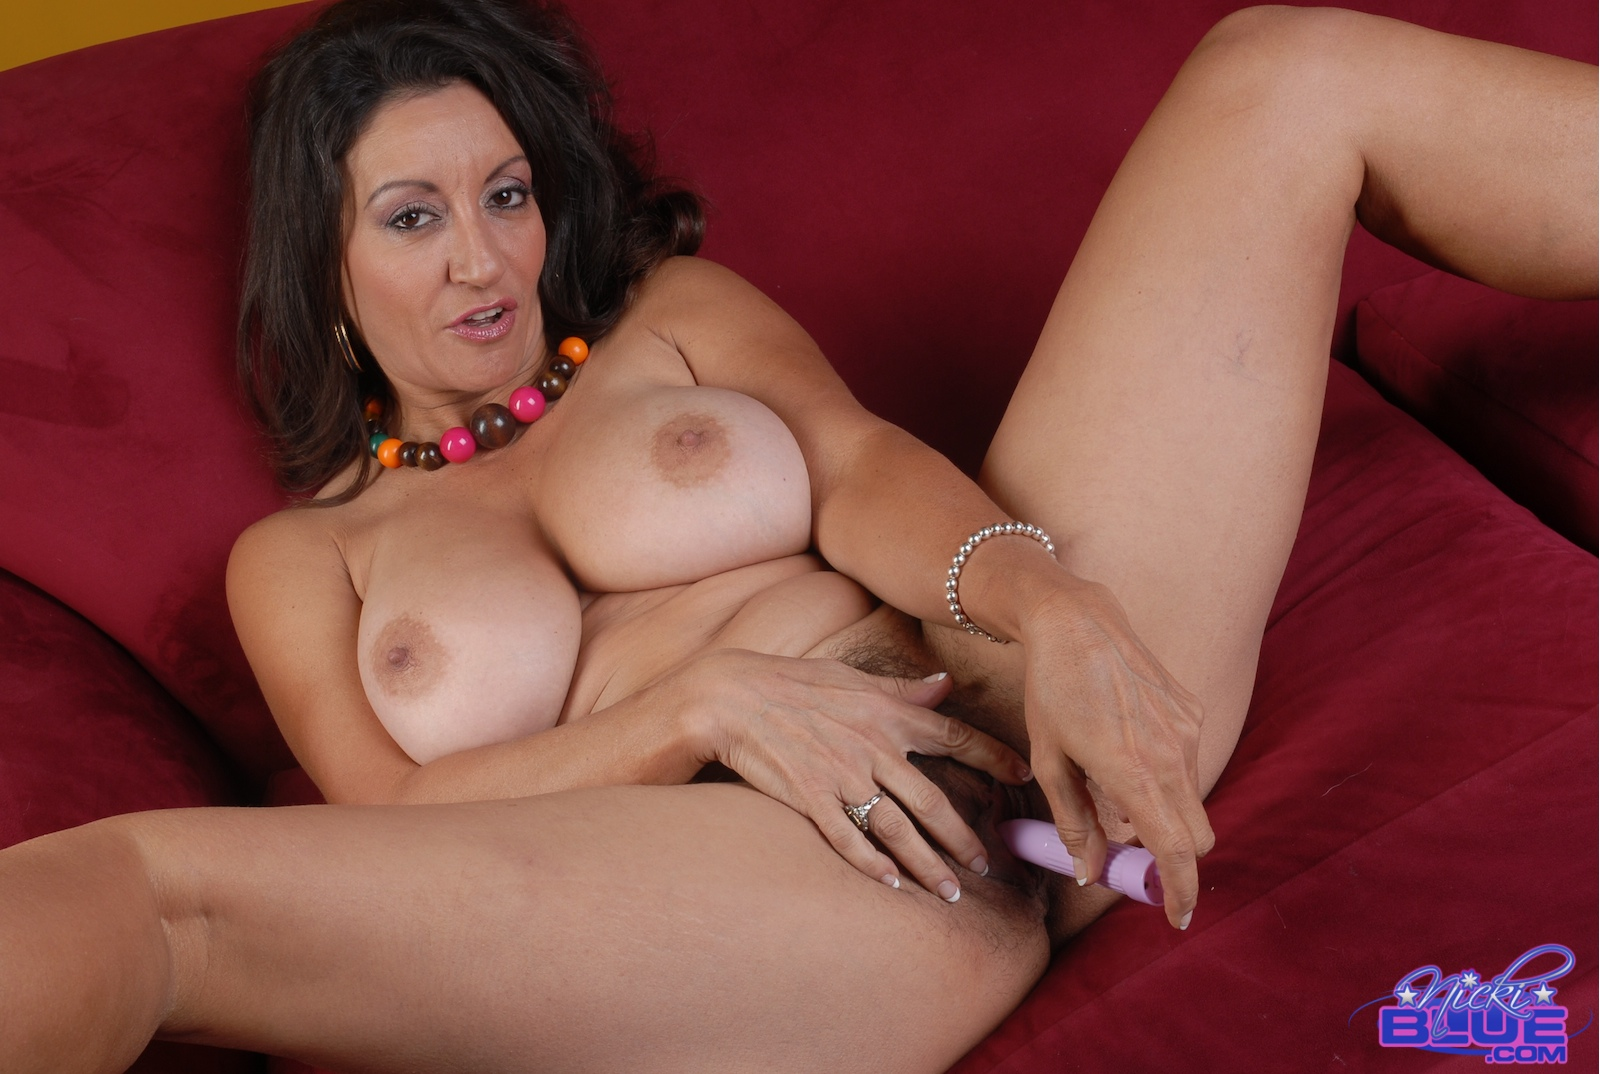 Mature women with flat chest nude